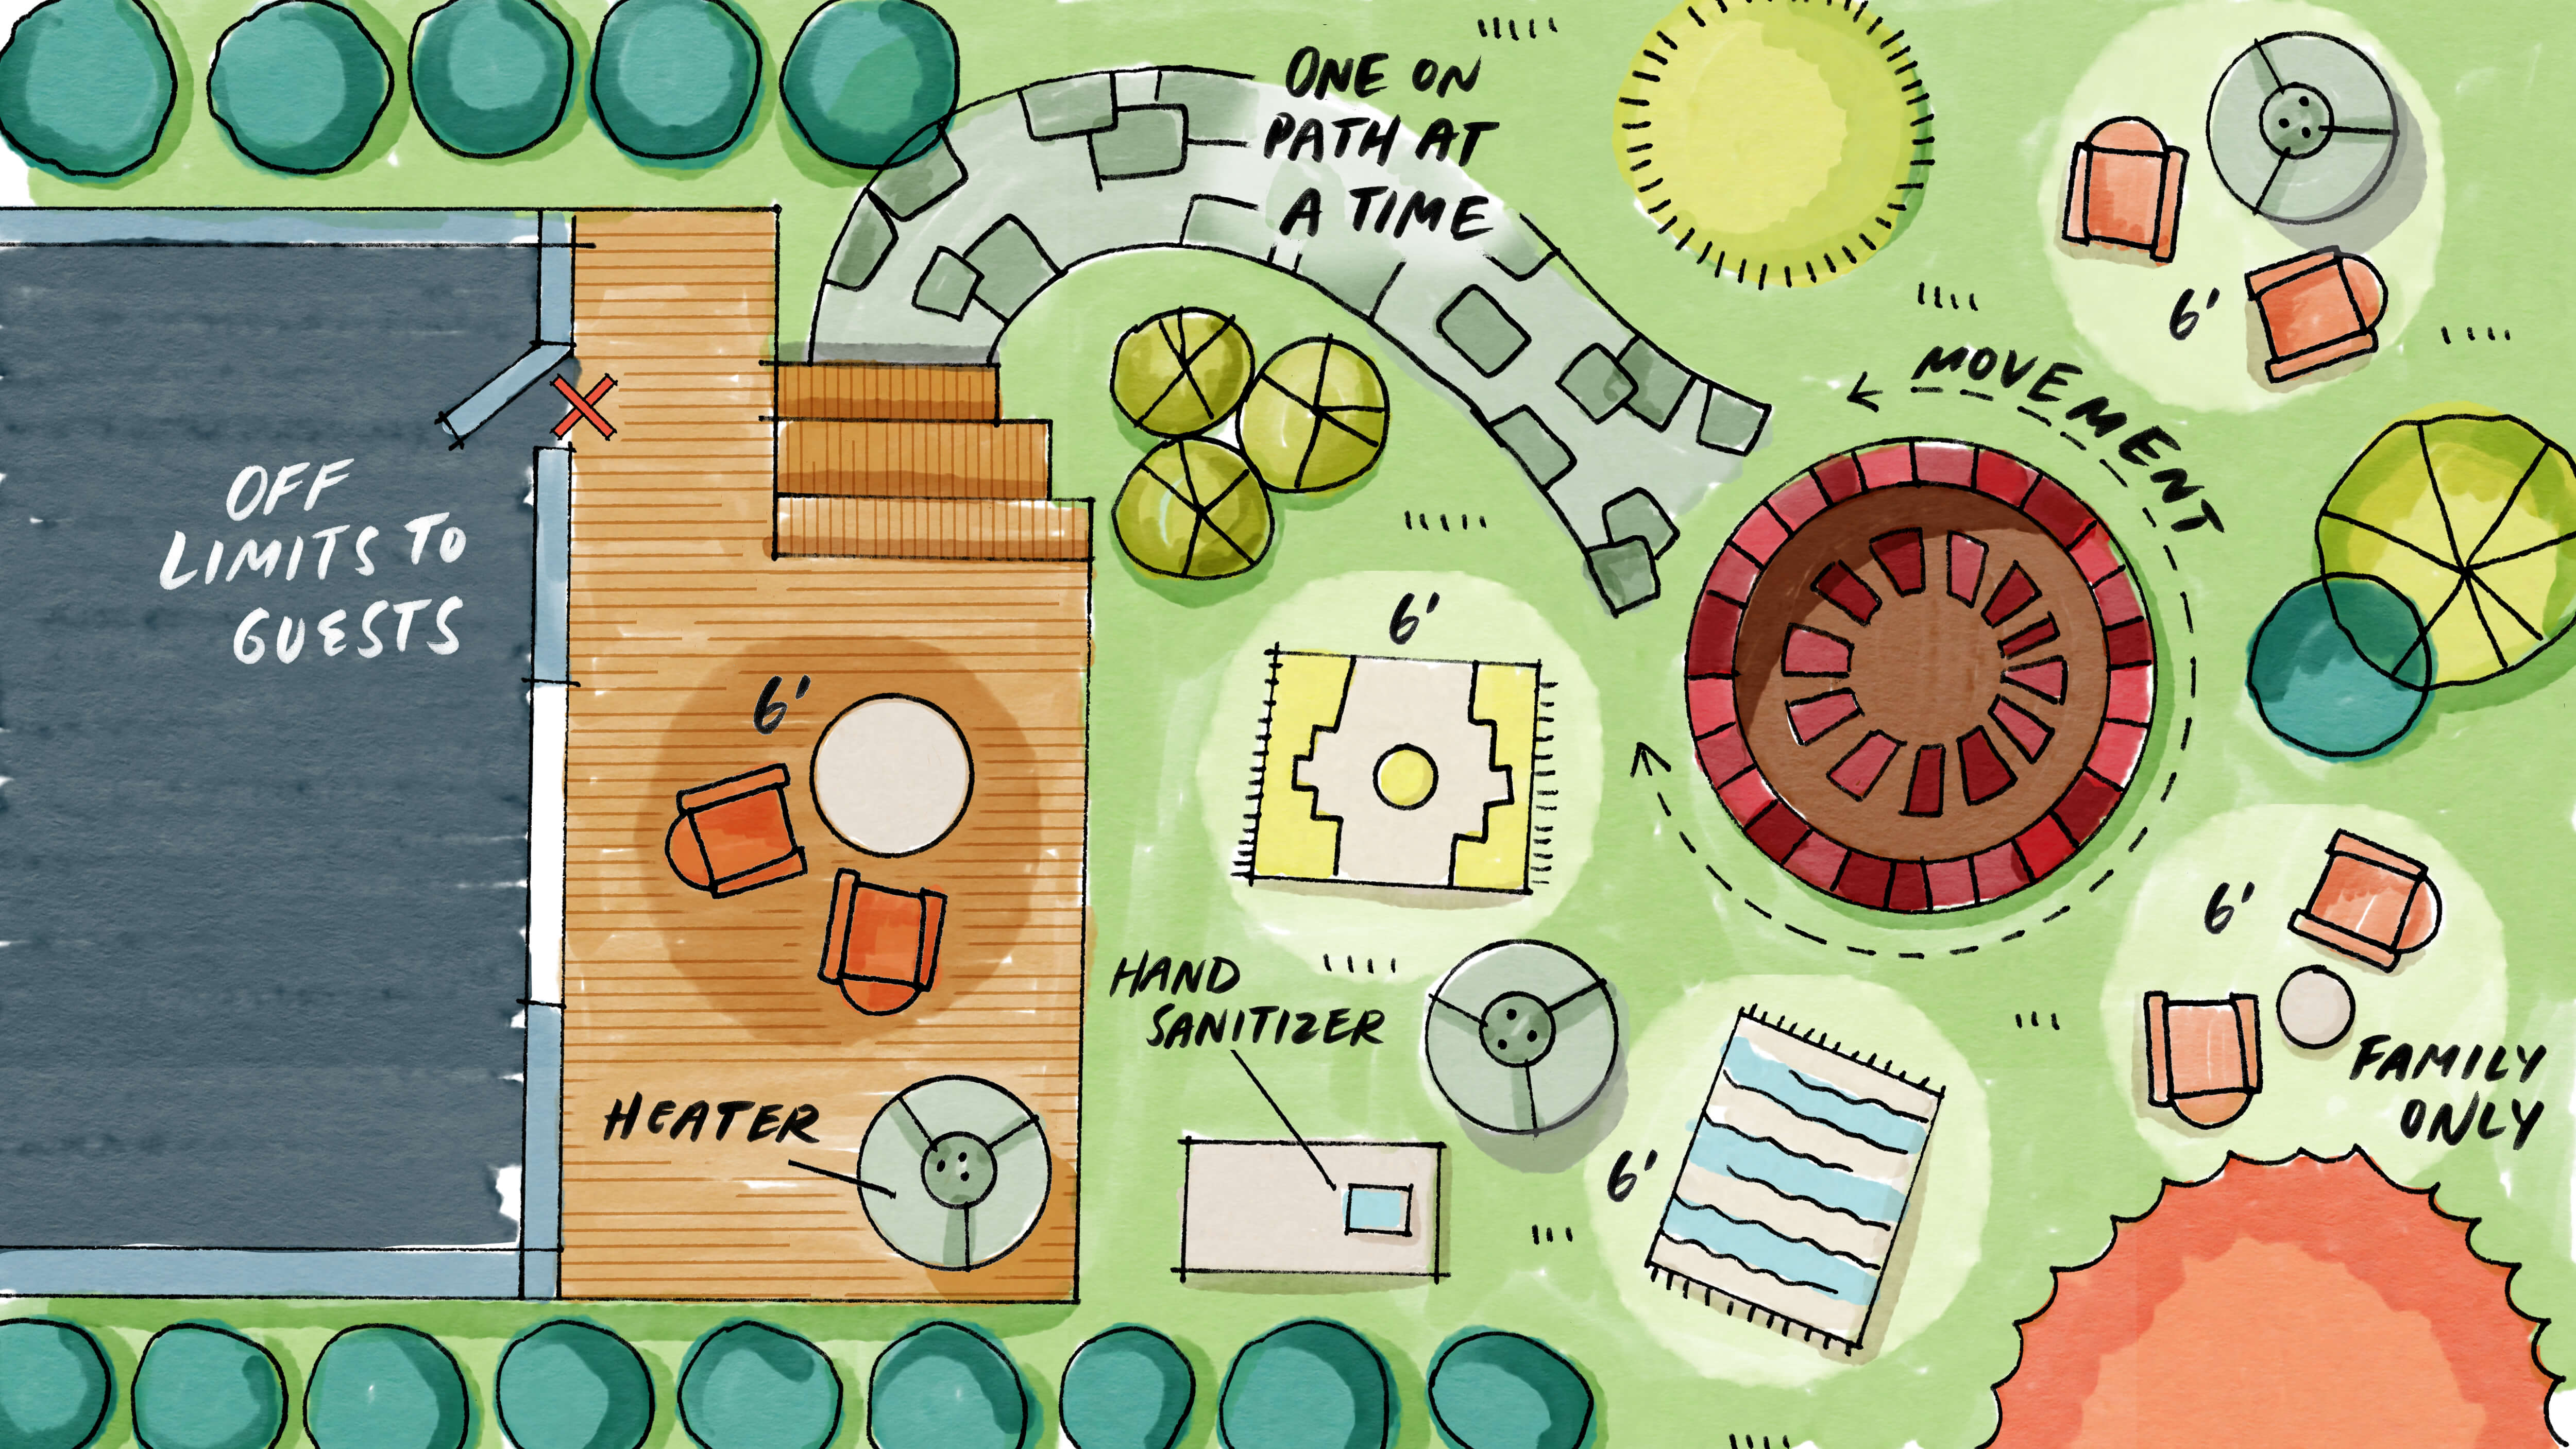 A drawing of a birds-eye view of a patio with space for social distancing and heaters.